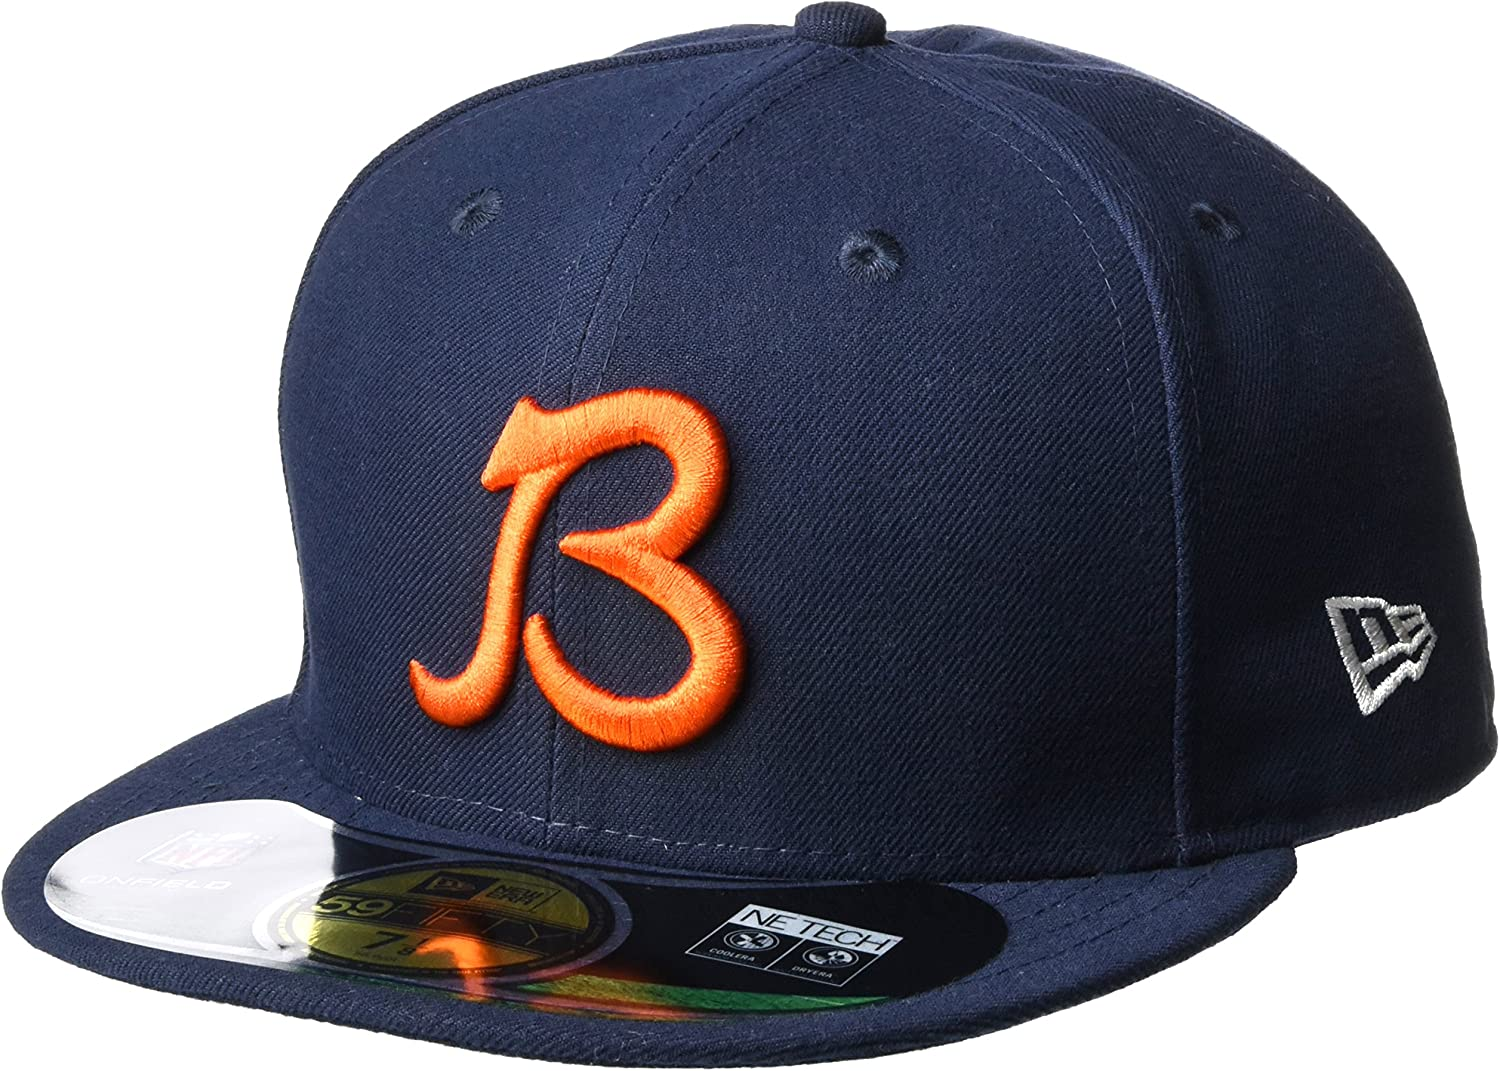 good out x buy popular hot product Amazon.com : New Era 59fifty Fitted Nfl Hat Chicago Bears : Cold ...